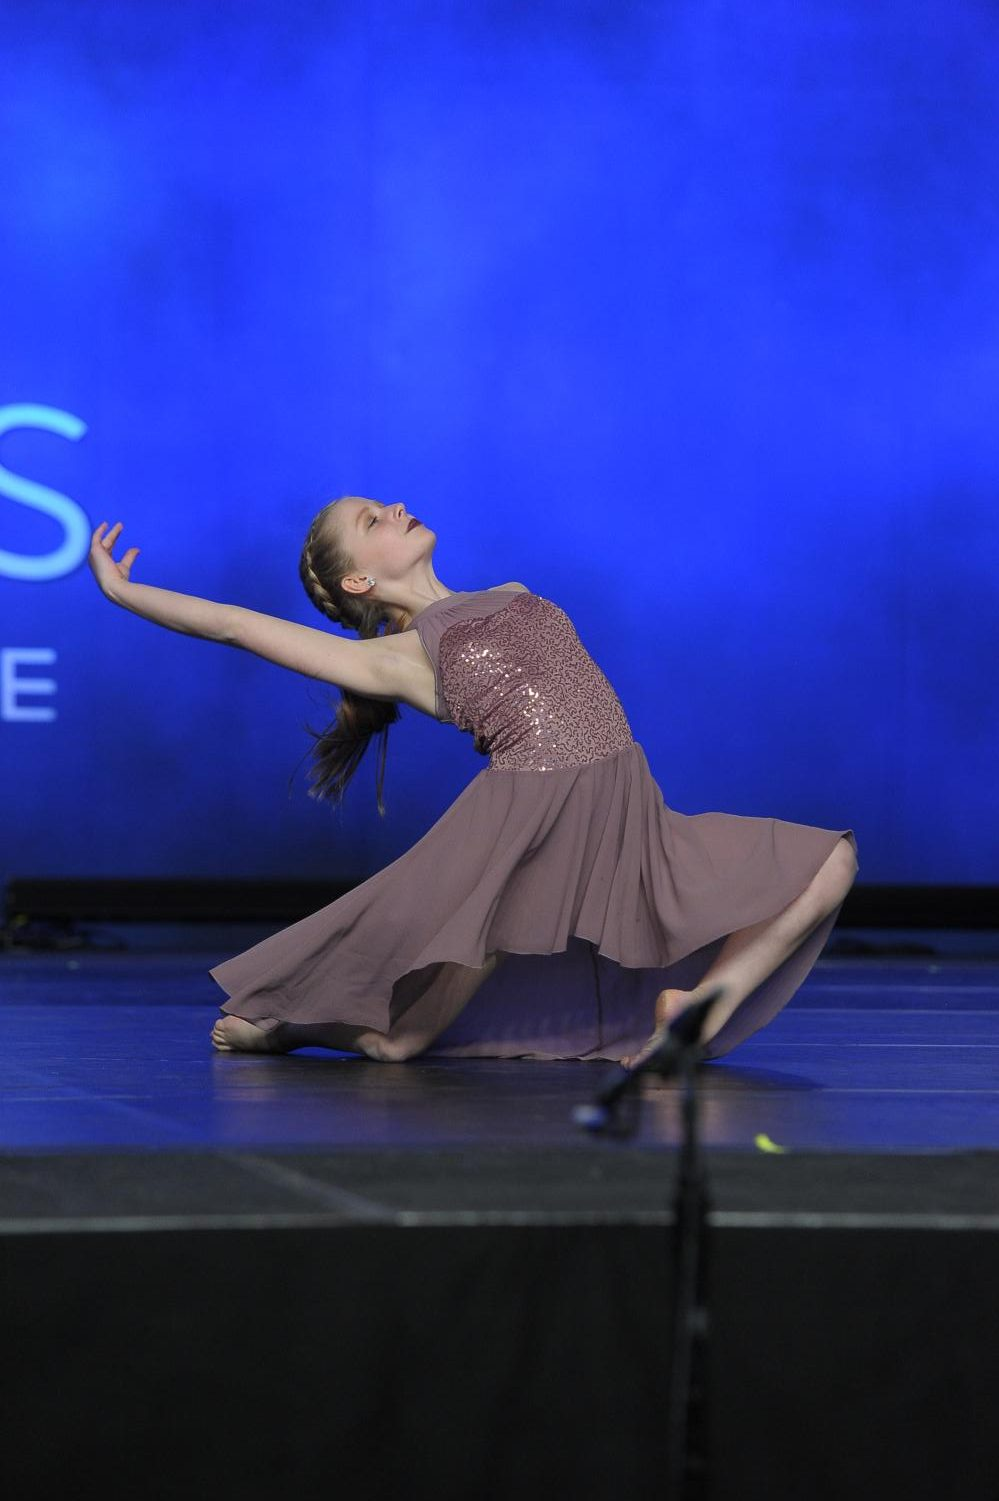 Sophomore Lily Woodward dances at the Dance Academy of Siagel Productions and on the high school dance group, Cantico. She views the activity as a way to build confidence, destress, and follow her passion.